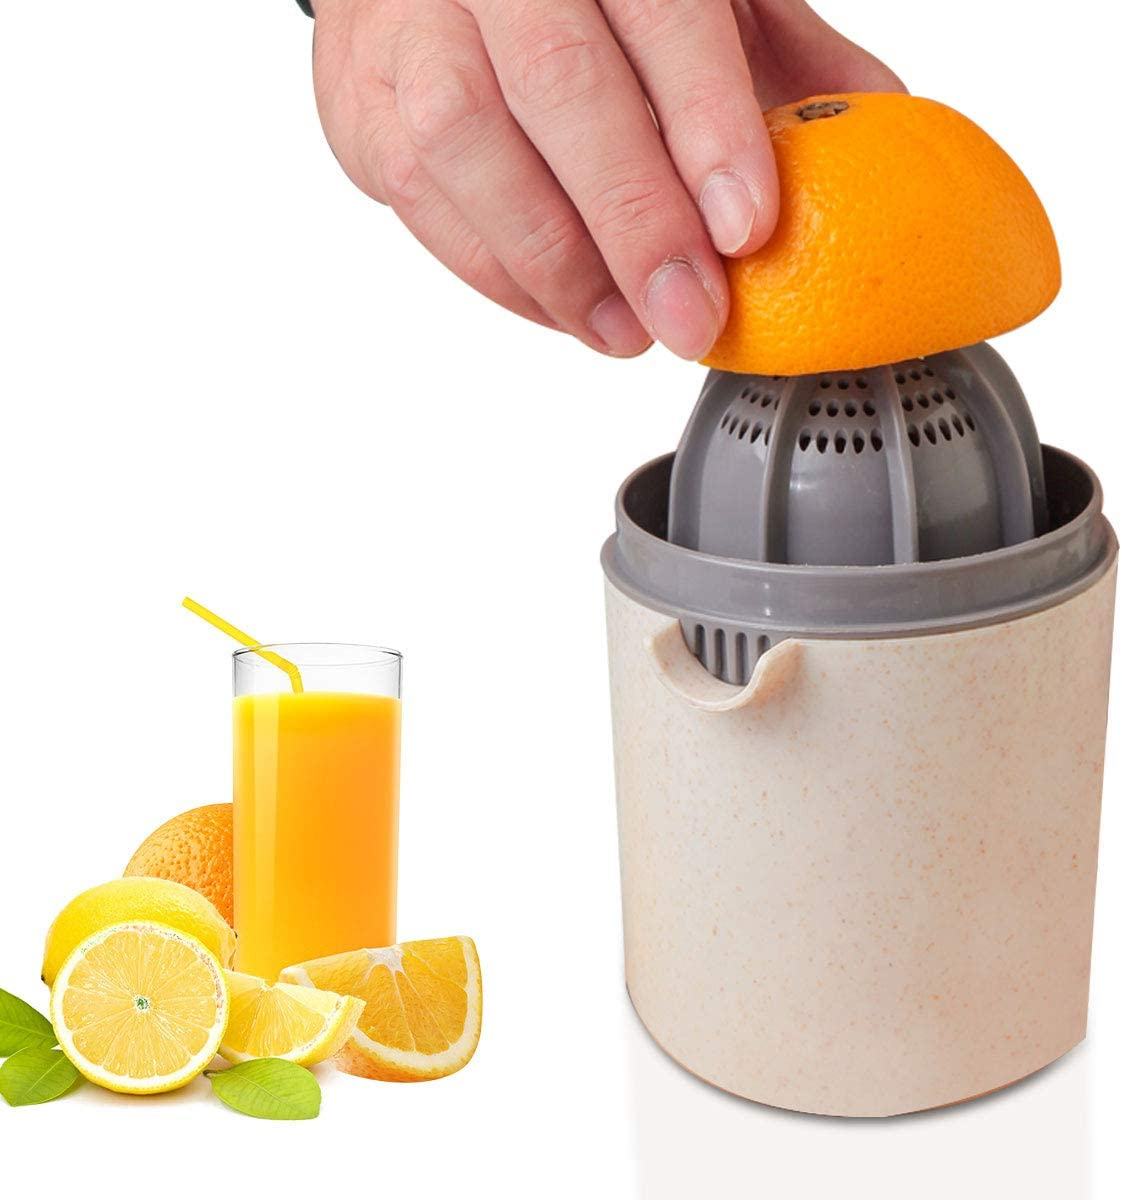 Manual Juicer, Citrus Lemon Orange Hand Squeezer Lime Juicer Manual Citrus Press Juicer with Strainer and Container- JH JIEMEI HOME